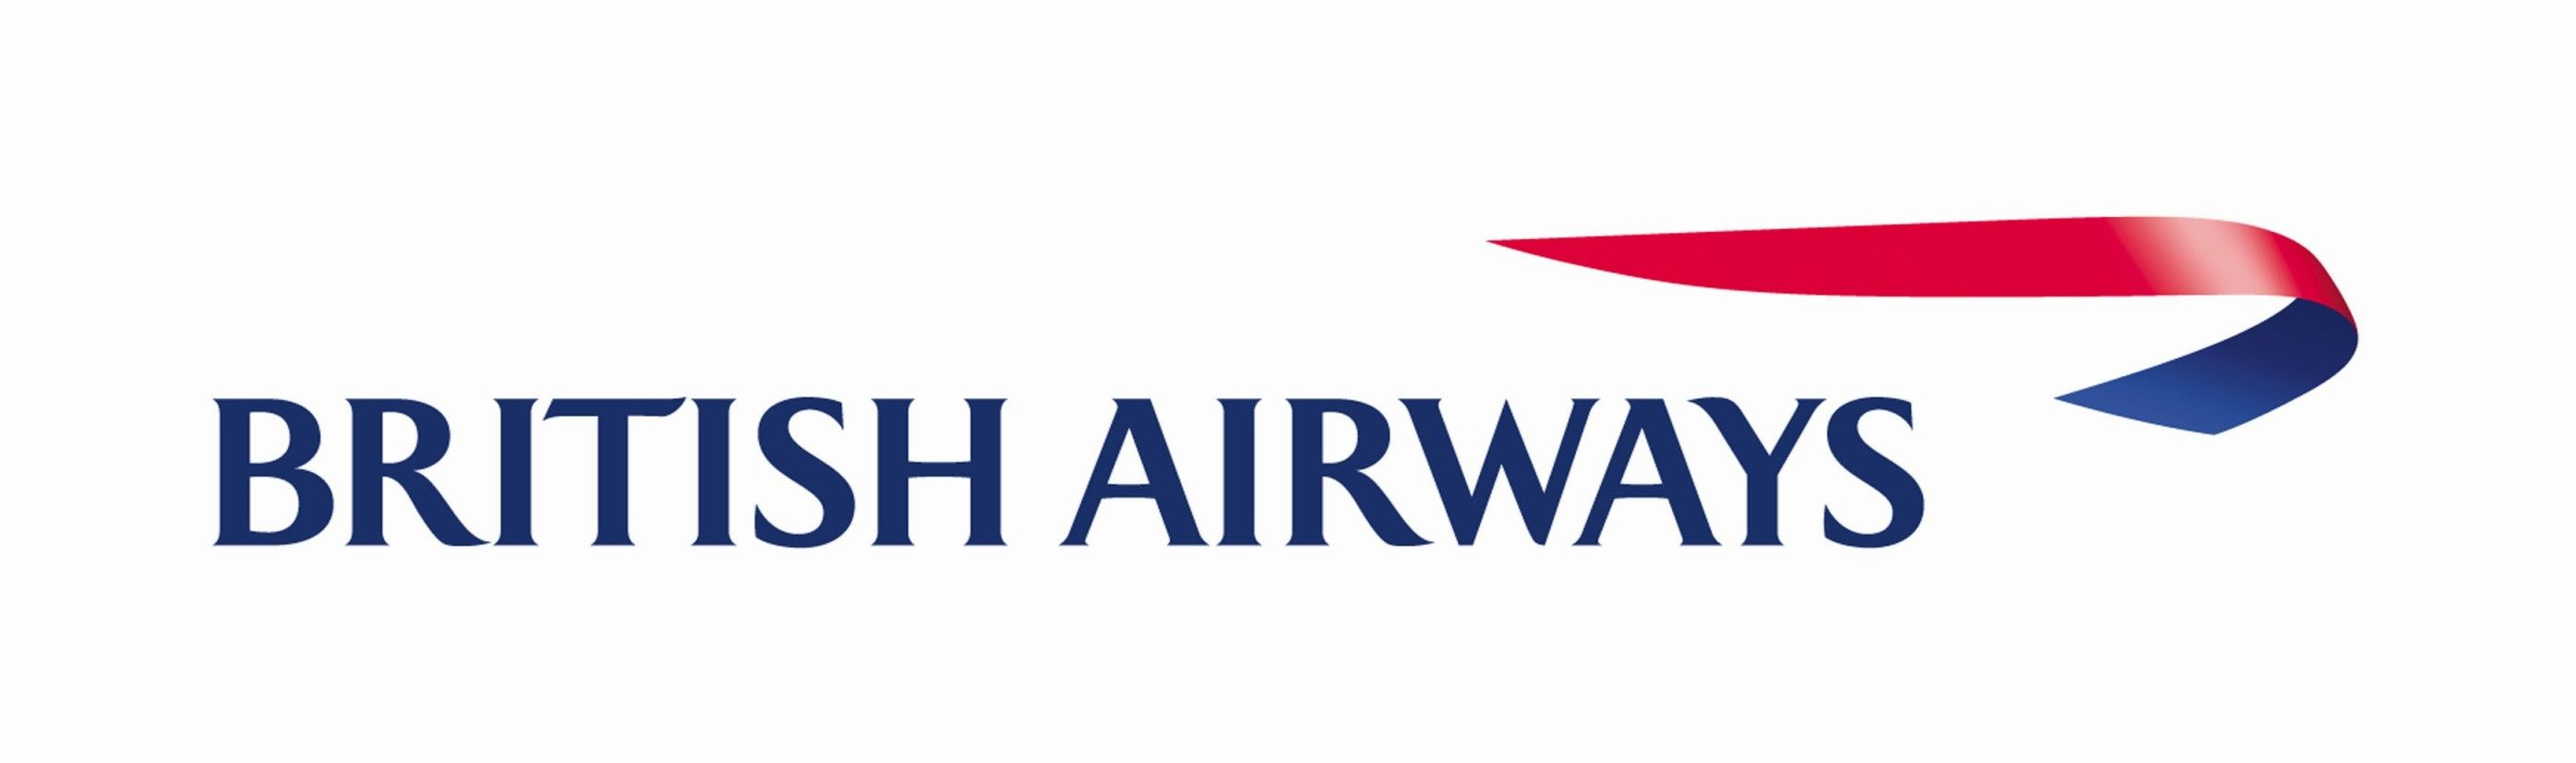 British Airways Logo - British Airways Logo - Cyprus Mail